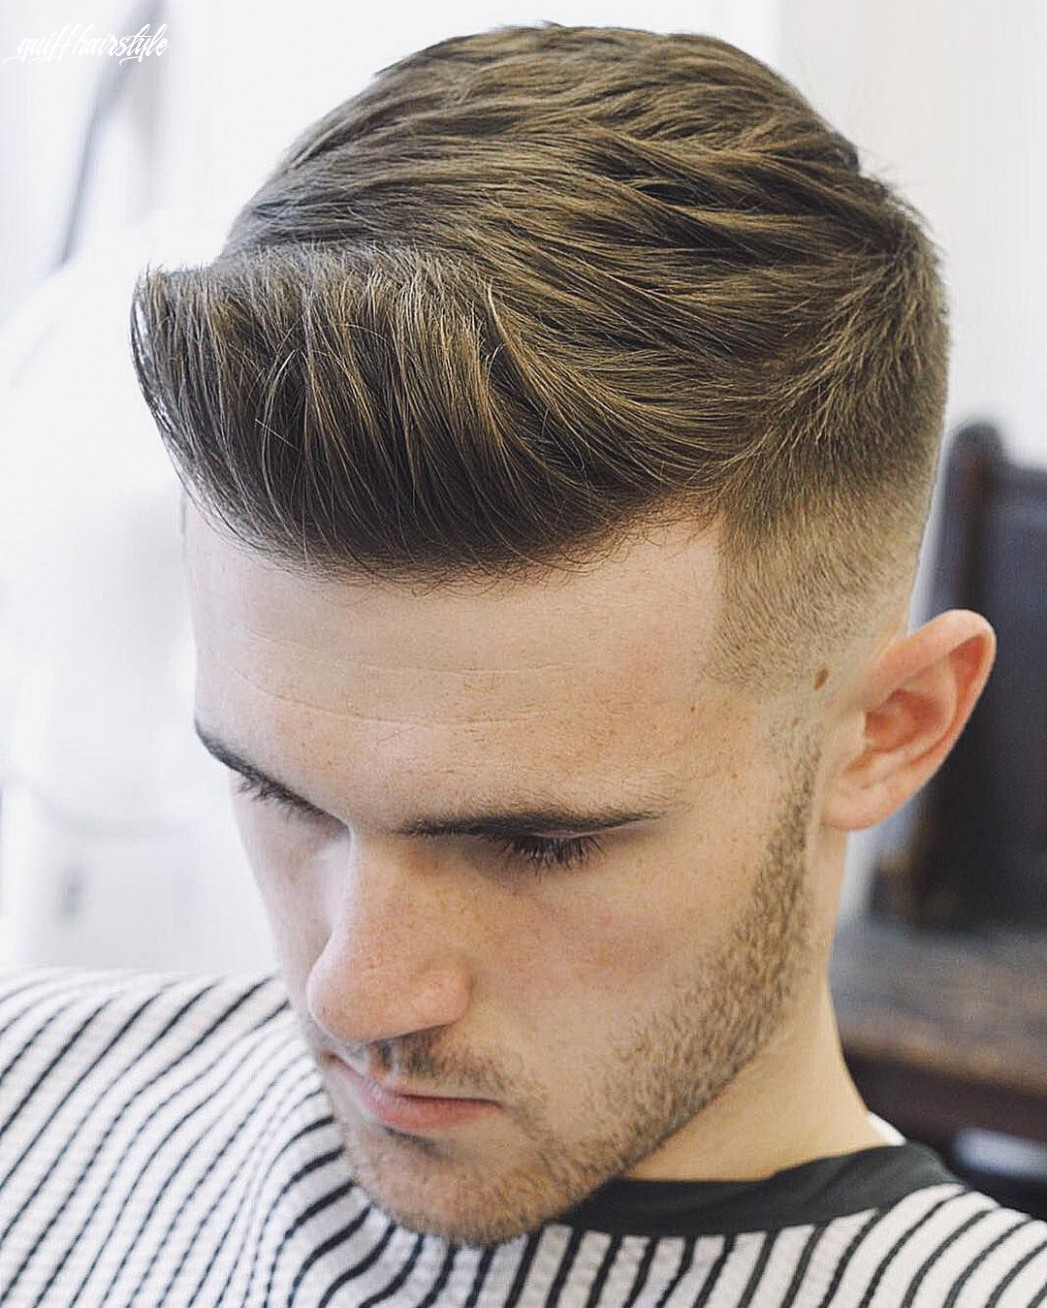 8 new hairstyles for men (8 update) | mens hairstyles short